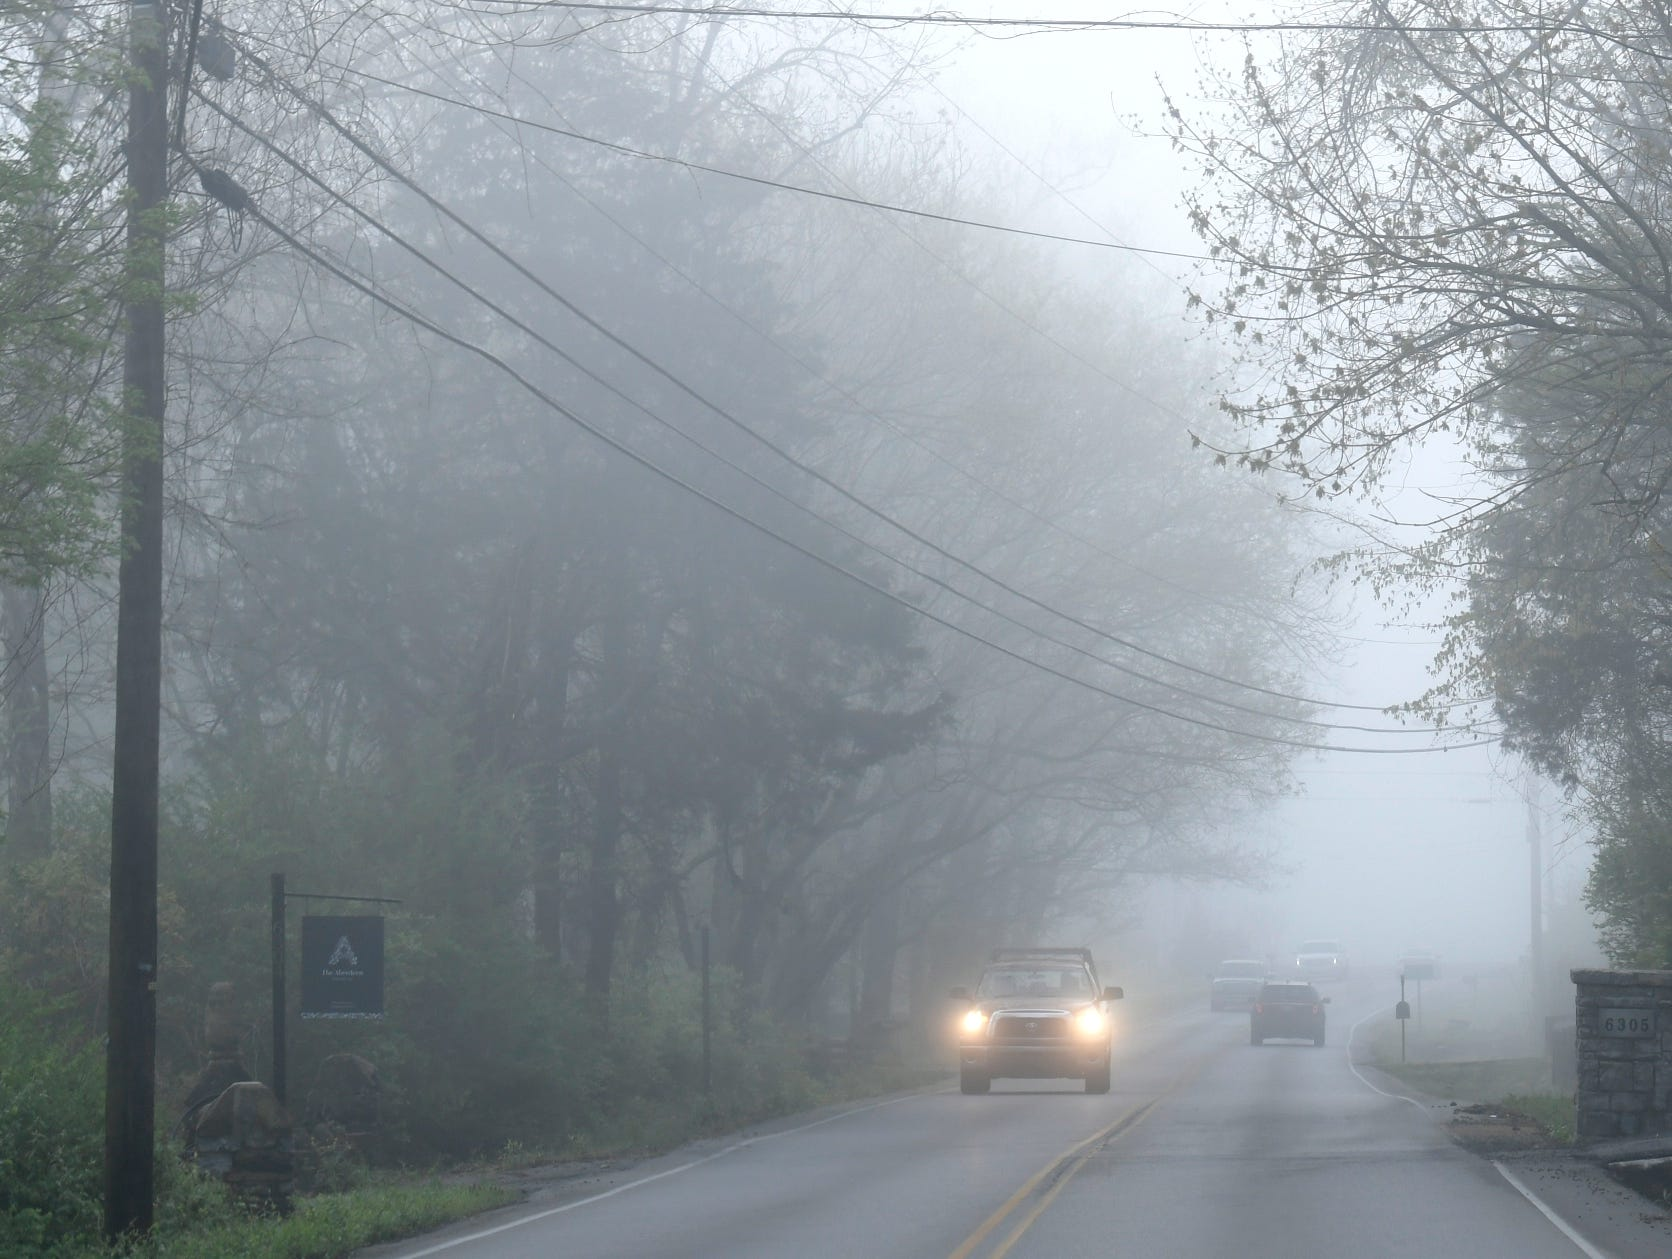 Cars travel down a foggy Murray Lane in Brentwood on Tuesday morning,  April 8, 2019. A dense fog advisory was issued for Middle Tennessee.